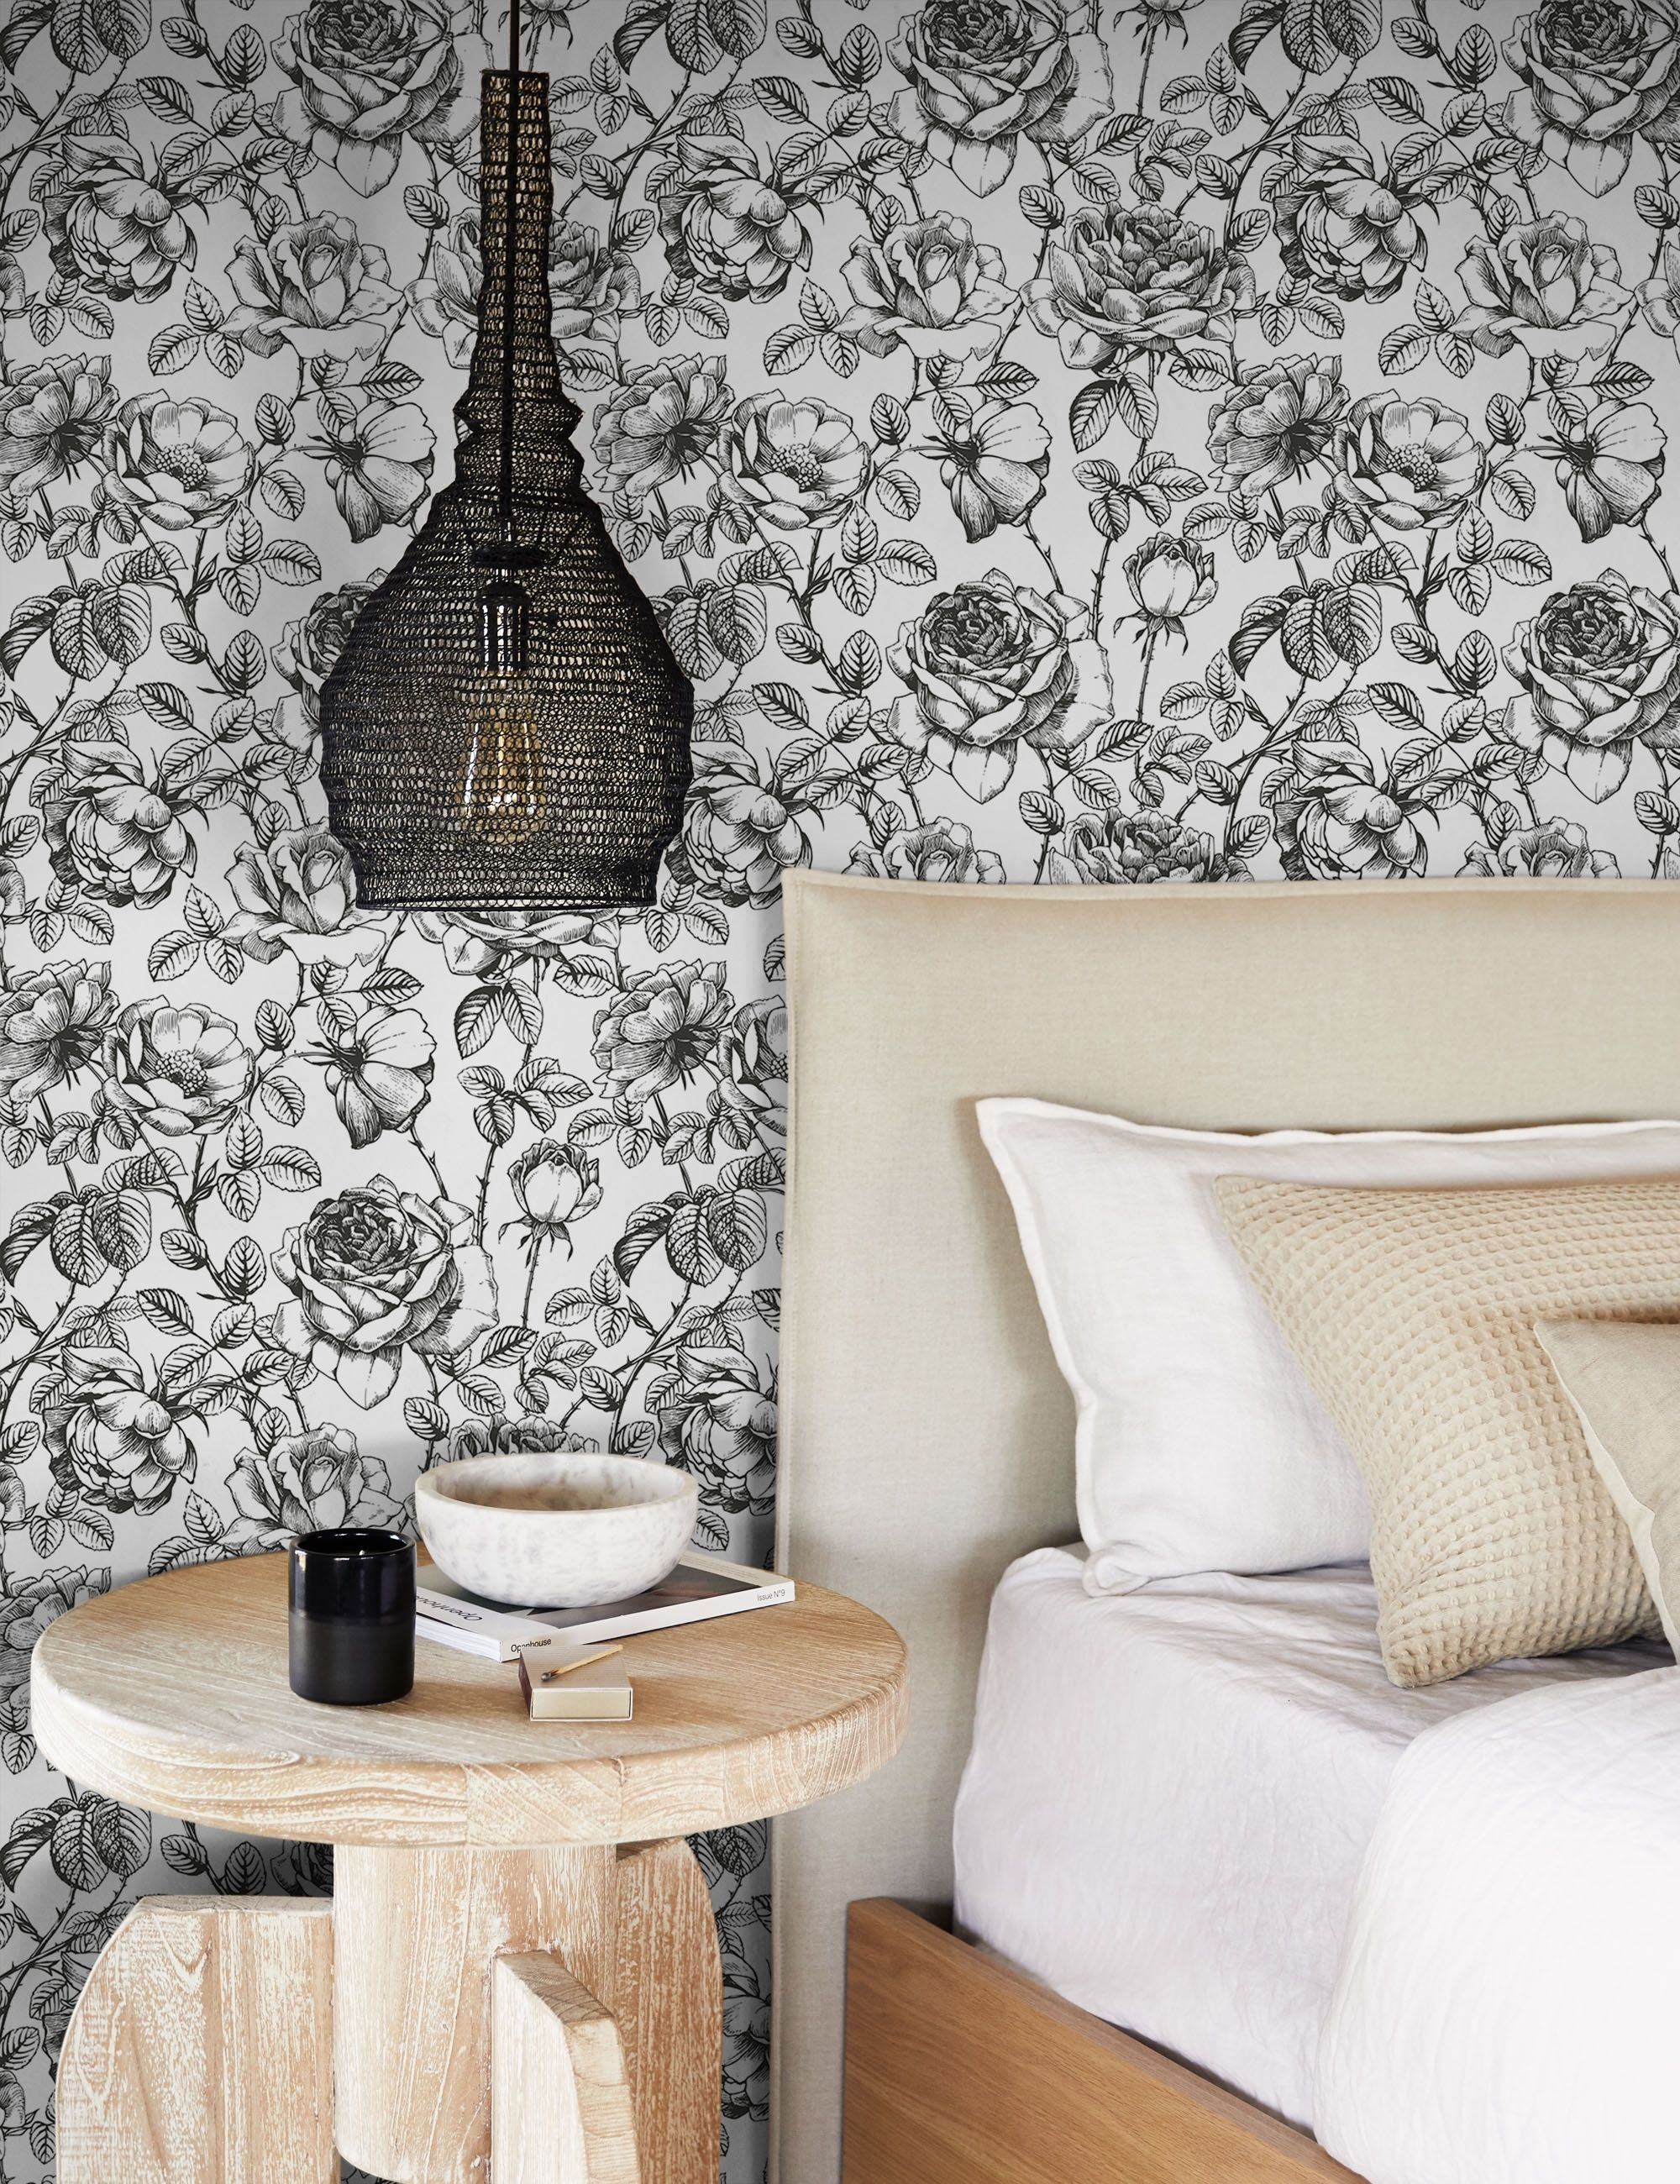 Anewall Black And White Floral Wallpaper In 2021 Master Bedroom Wallpaper Wallpaper Walls Decor Home Wallpaper